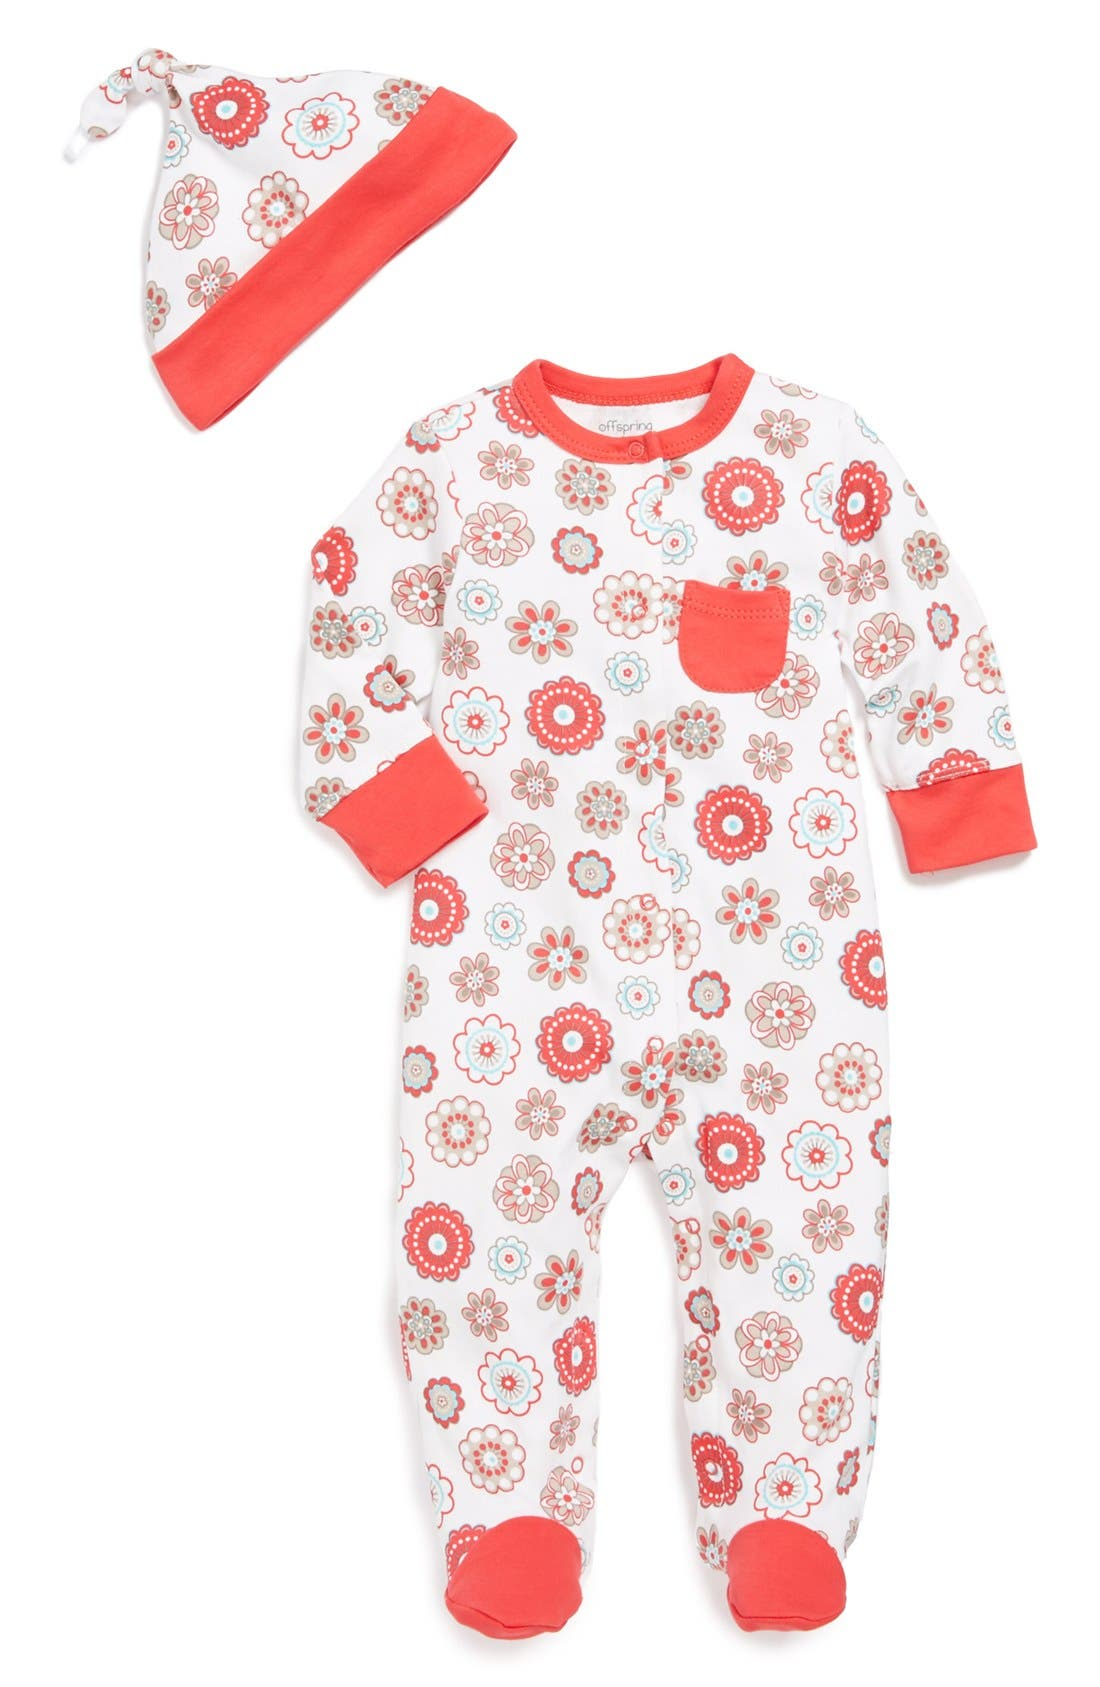 Alternate Image 1 Selected - Offspring 'Rondelle' Print One-Piece & Hat (Baby Girls)